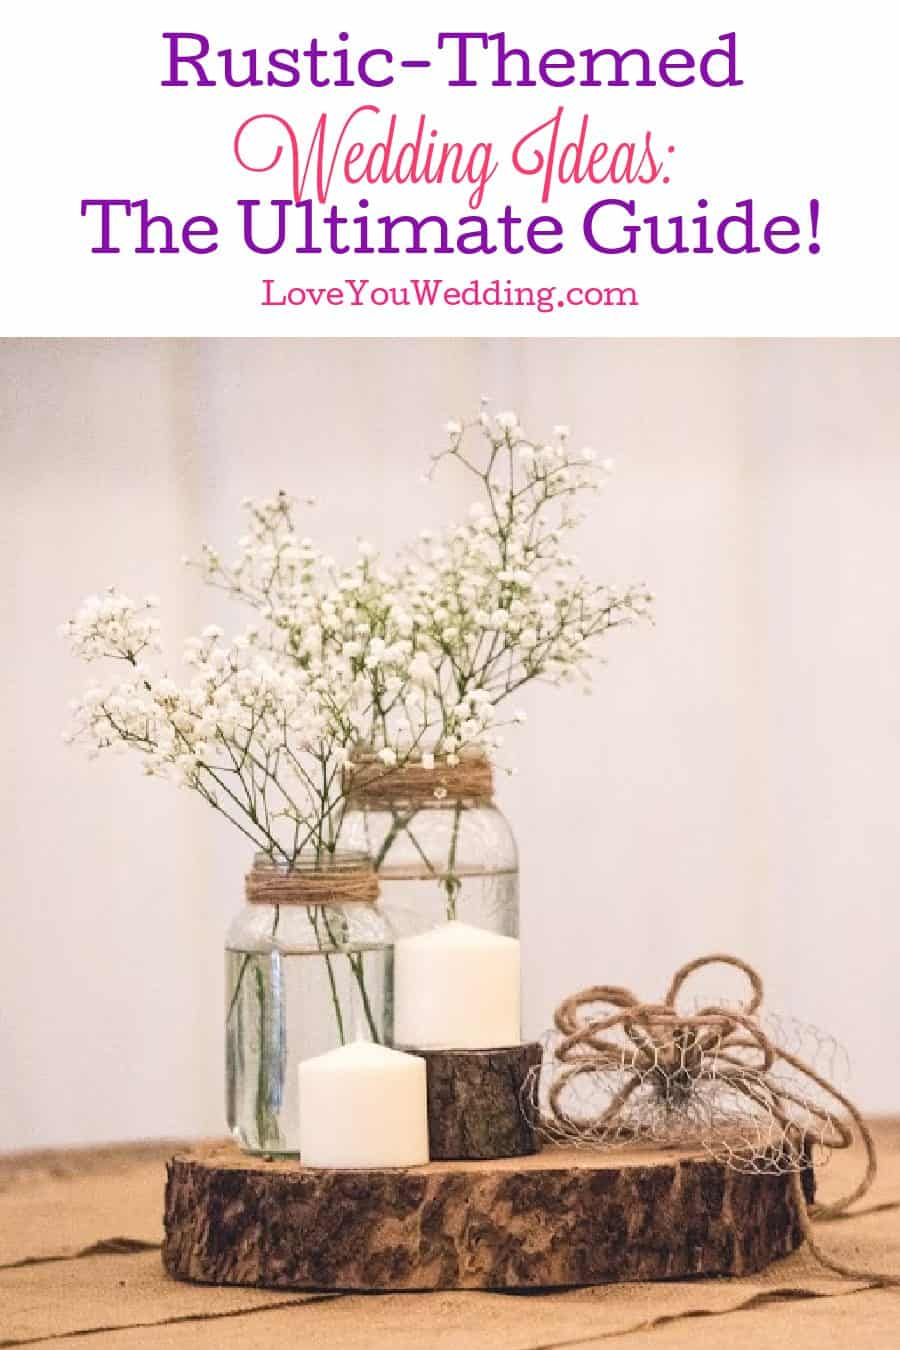 Need some amazing rustic-themed wedding ideas for same-sex couples? Check out our guide to the perfect planners, venues, flowers & more!